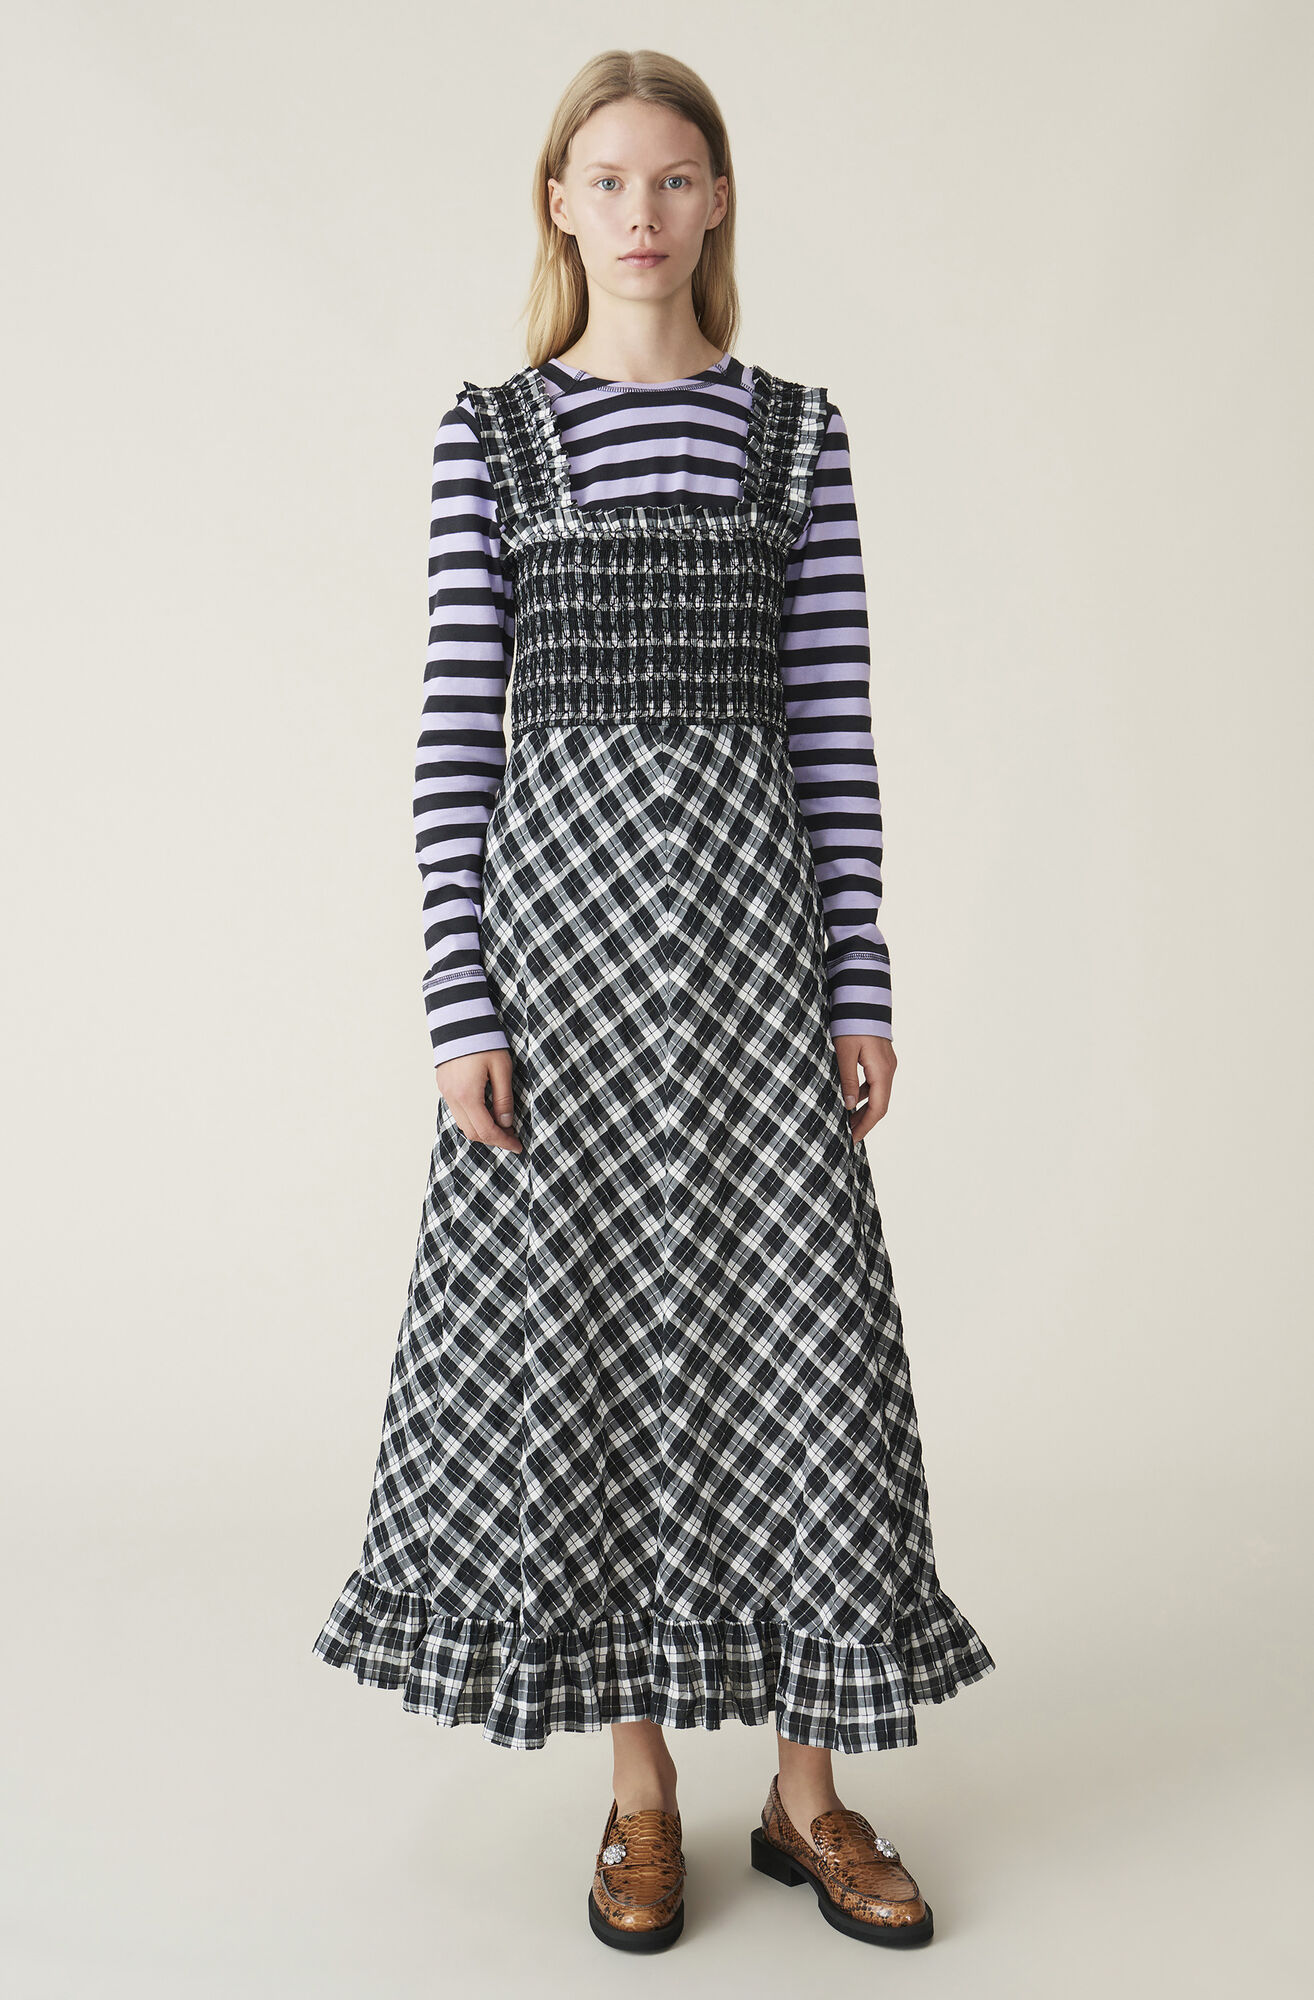 Ganni Us Seersucker Check Maxi Dress 142 00 Usd Shop Your New Seersucker Check Maxi Dress At Ganni Com